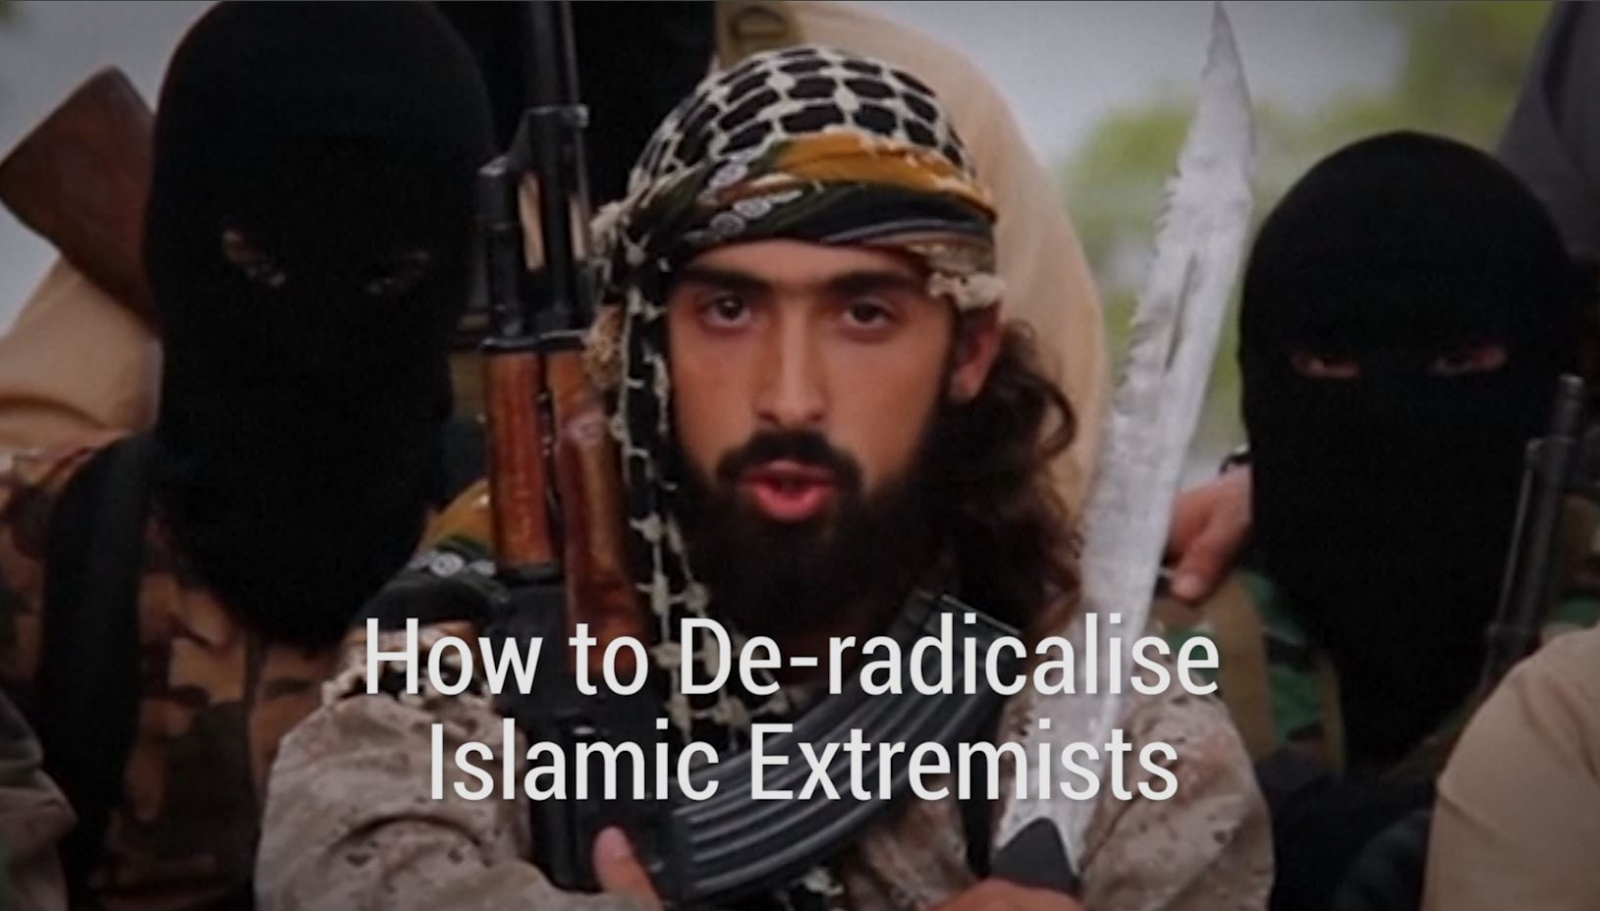 How to De-radicalise Islamist Extremists